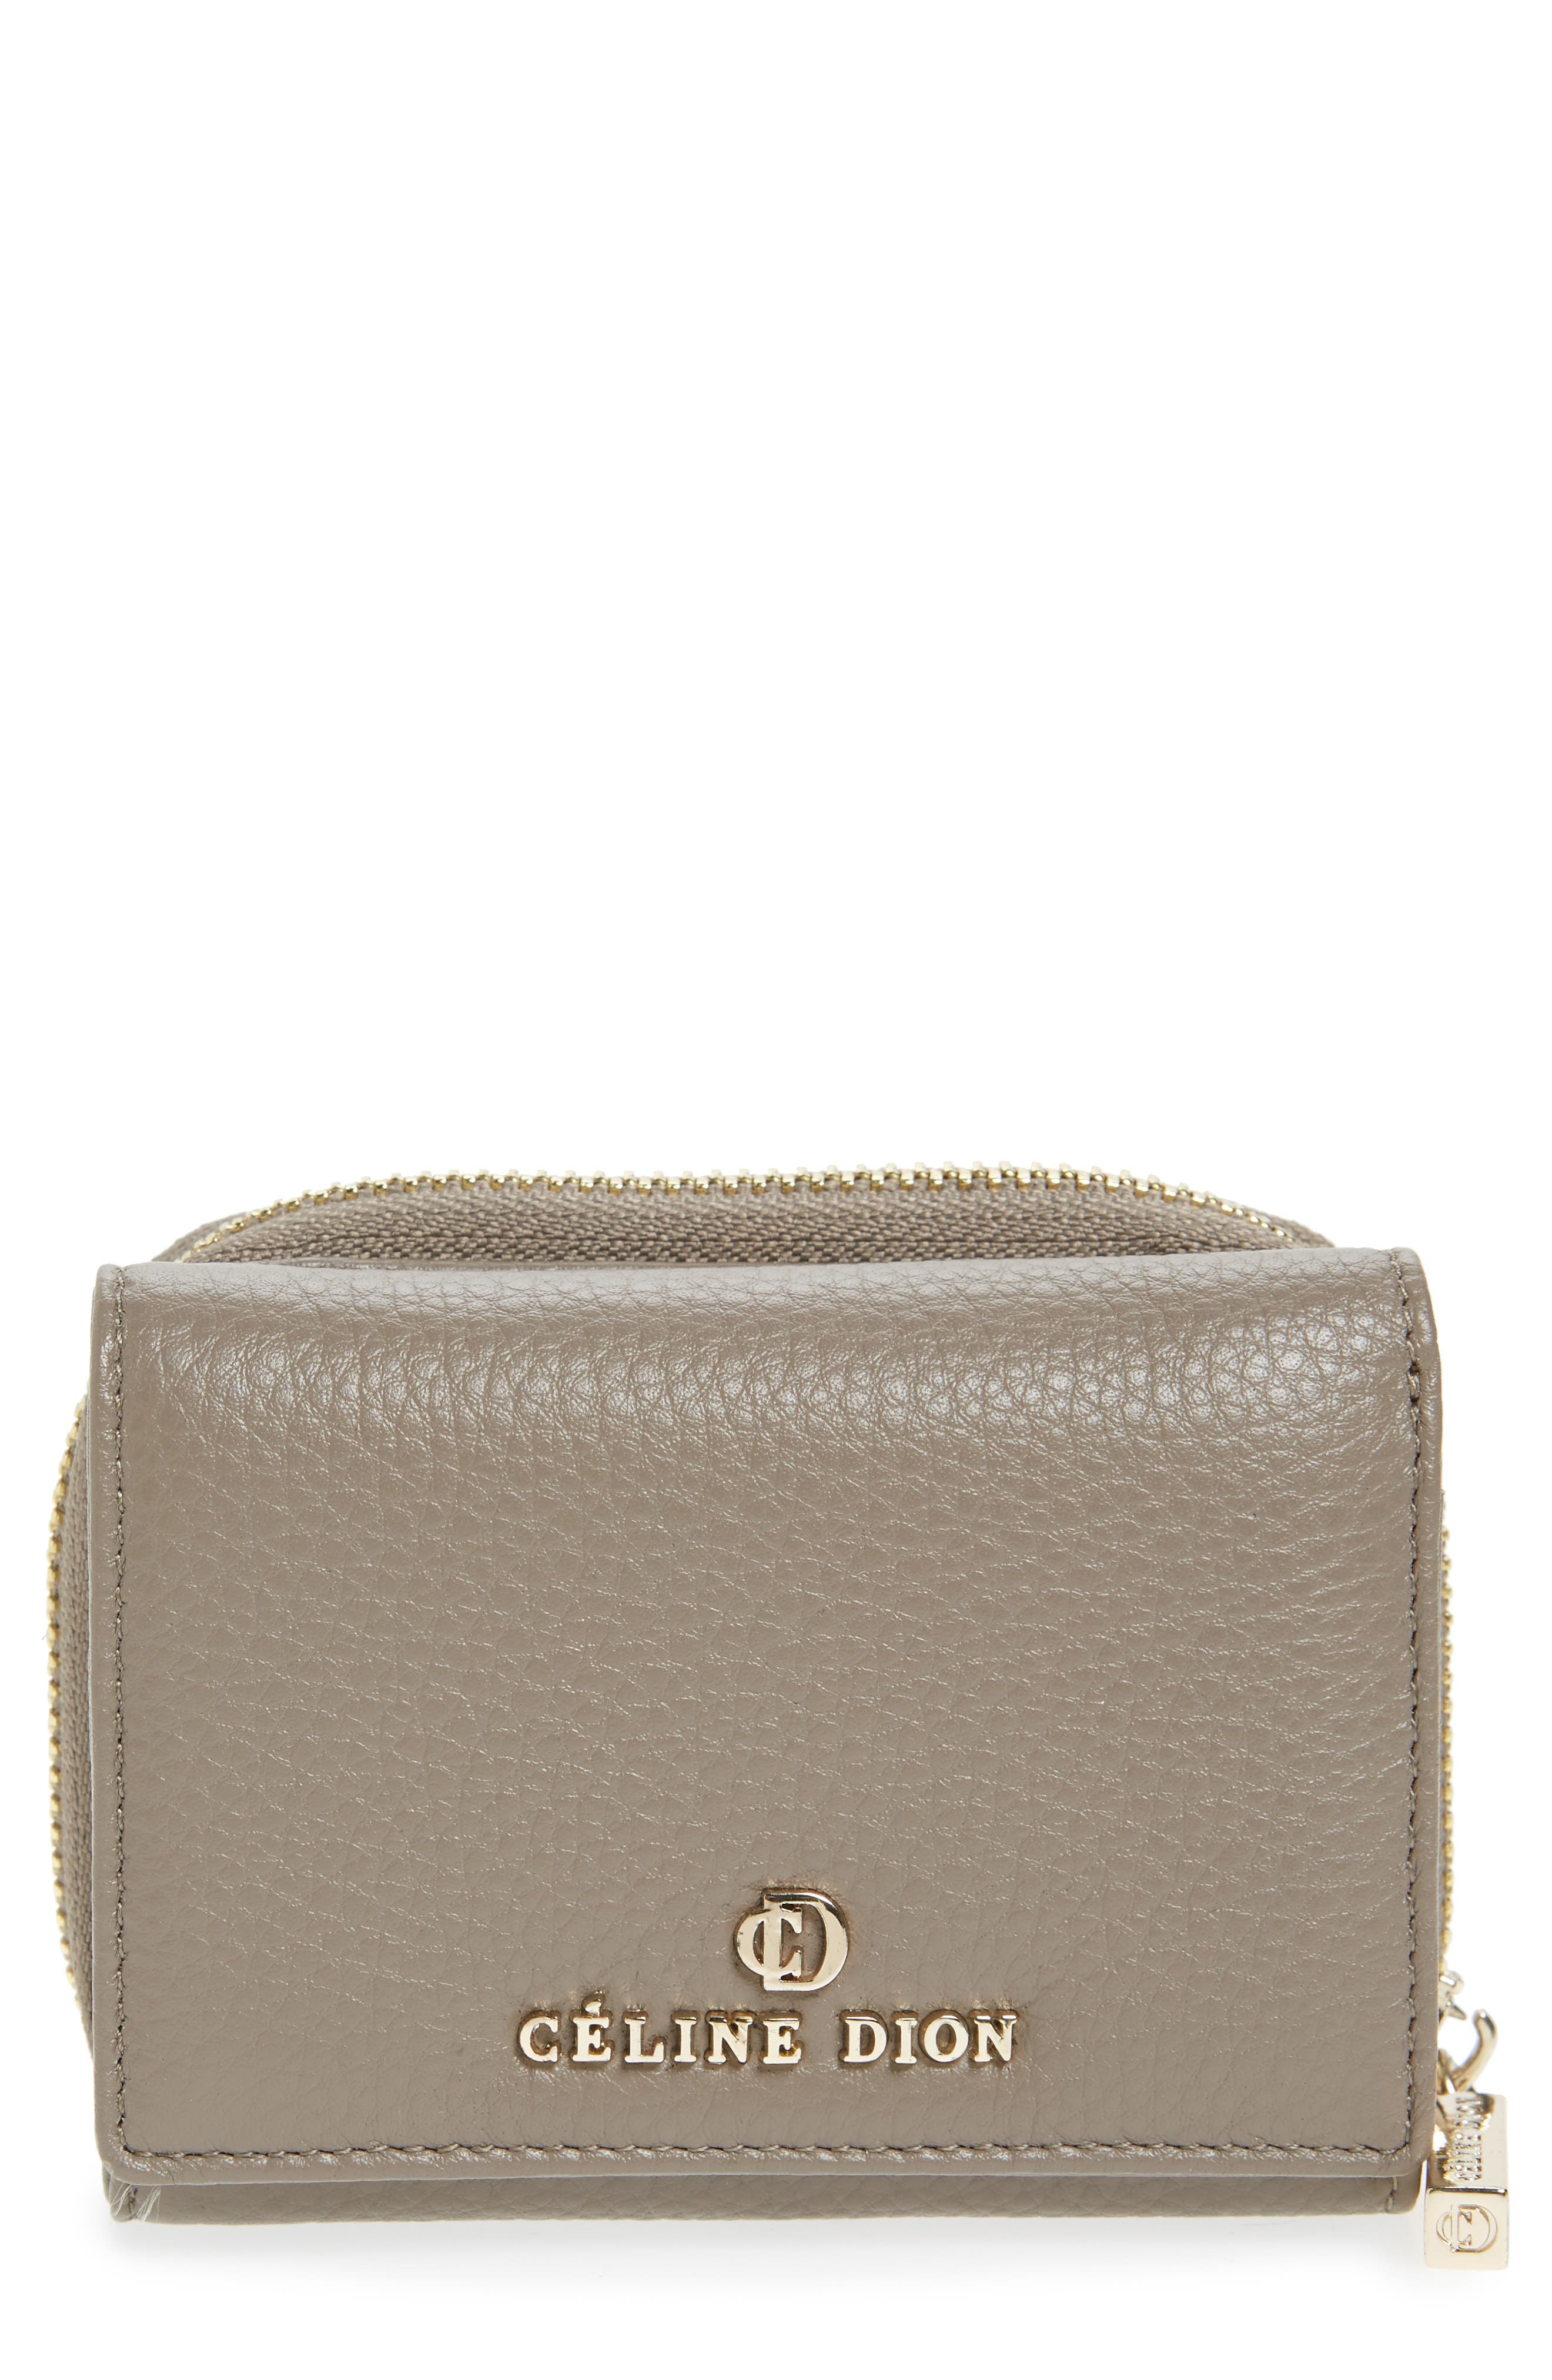 Céline Dion Small Adagio Leather Wallet,                             Main thumbnail 3, color,